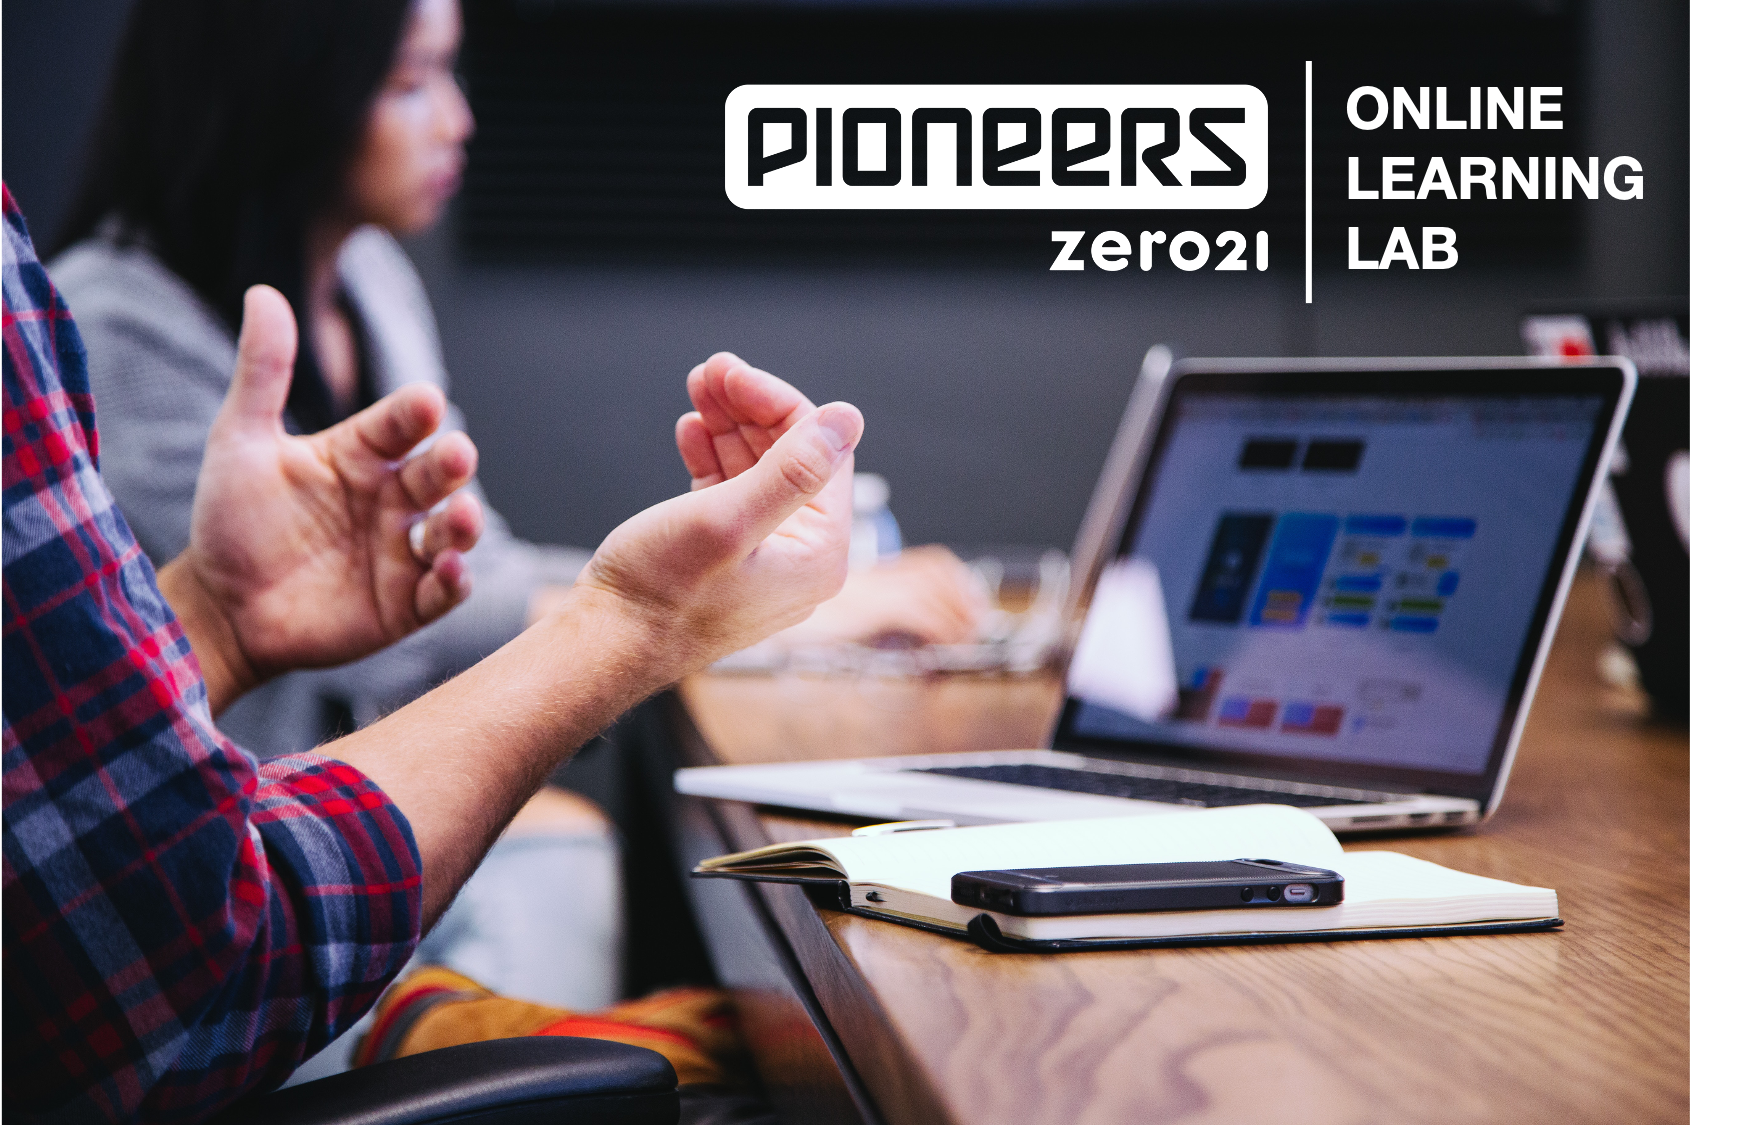 Pioneers Learning Lab